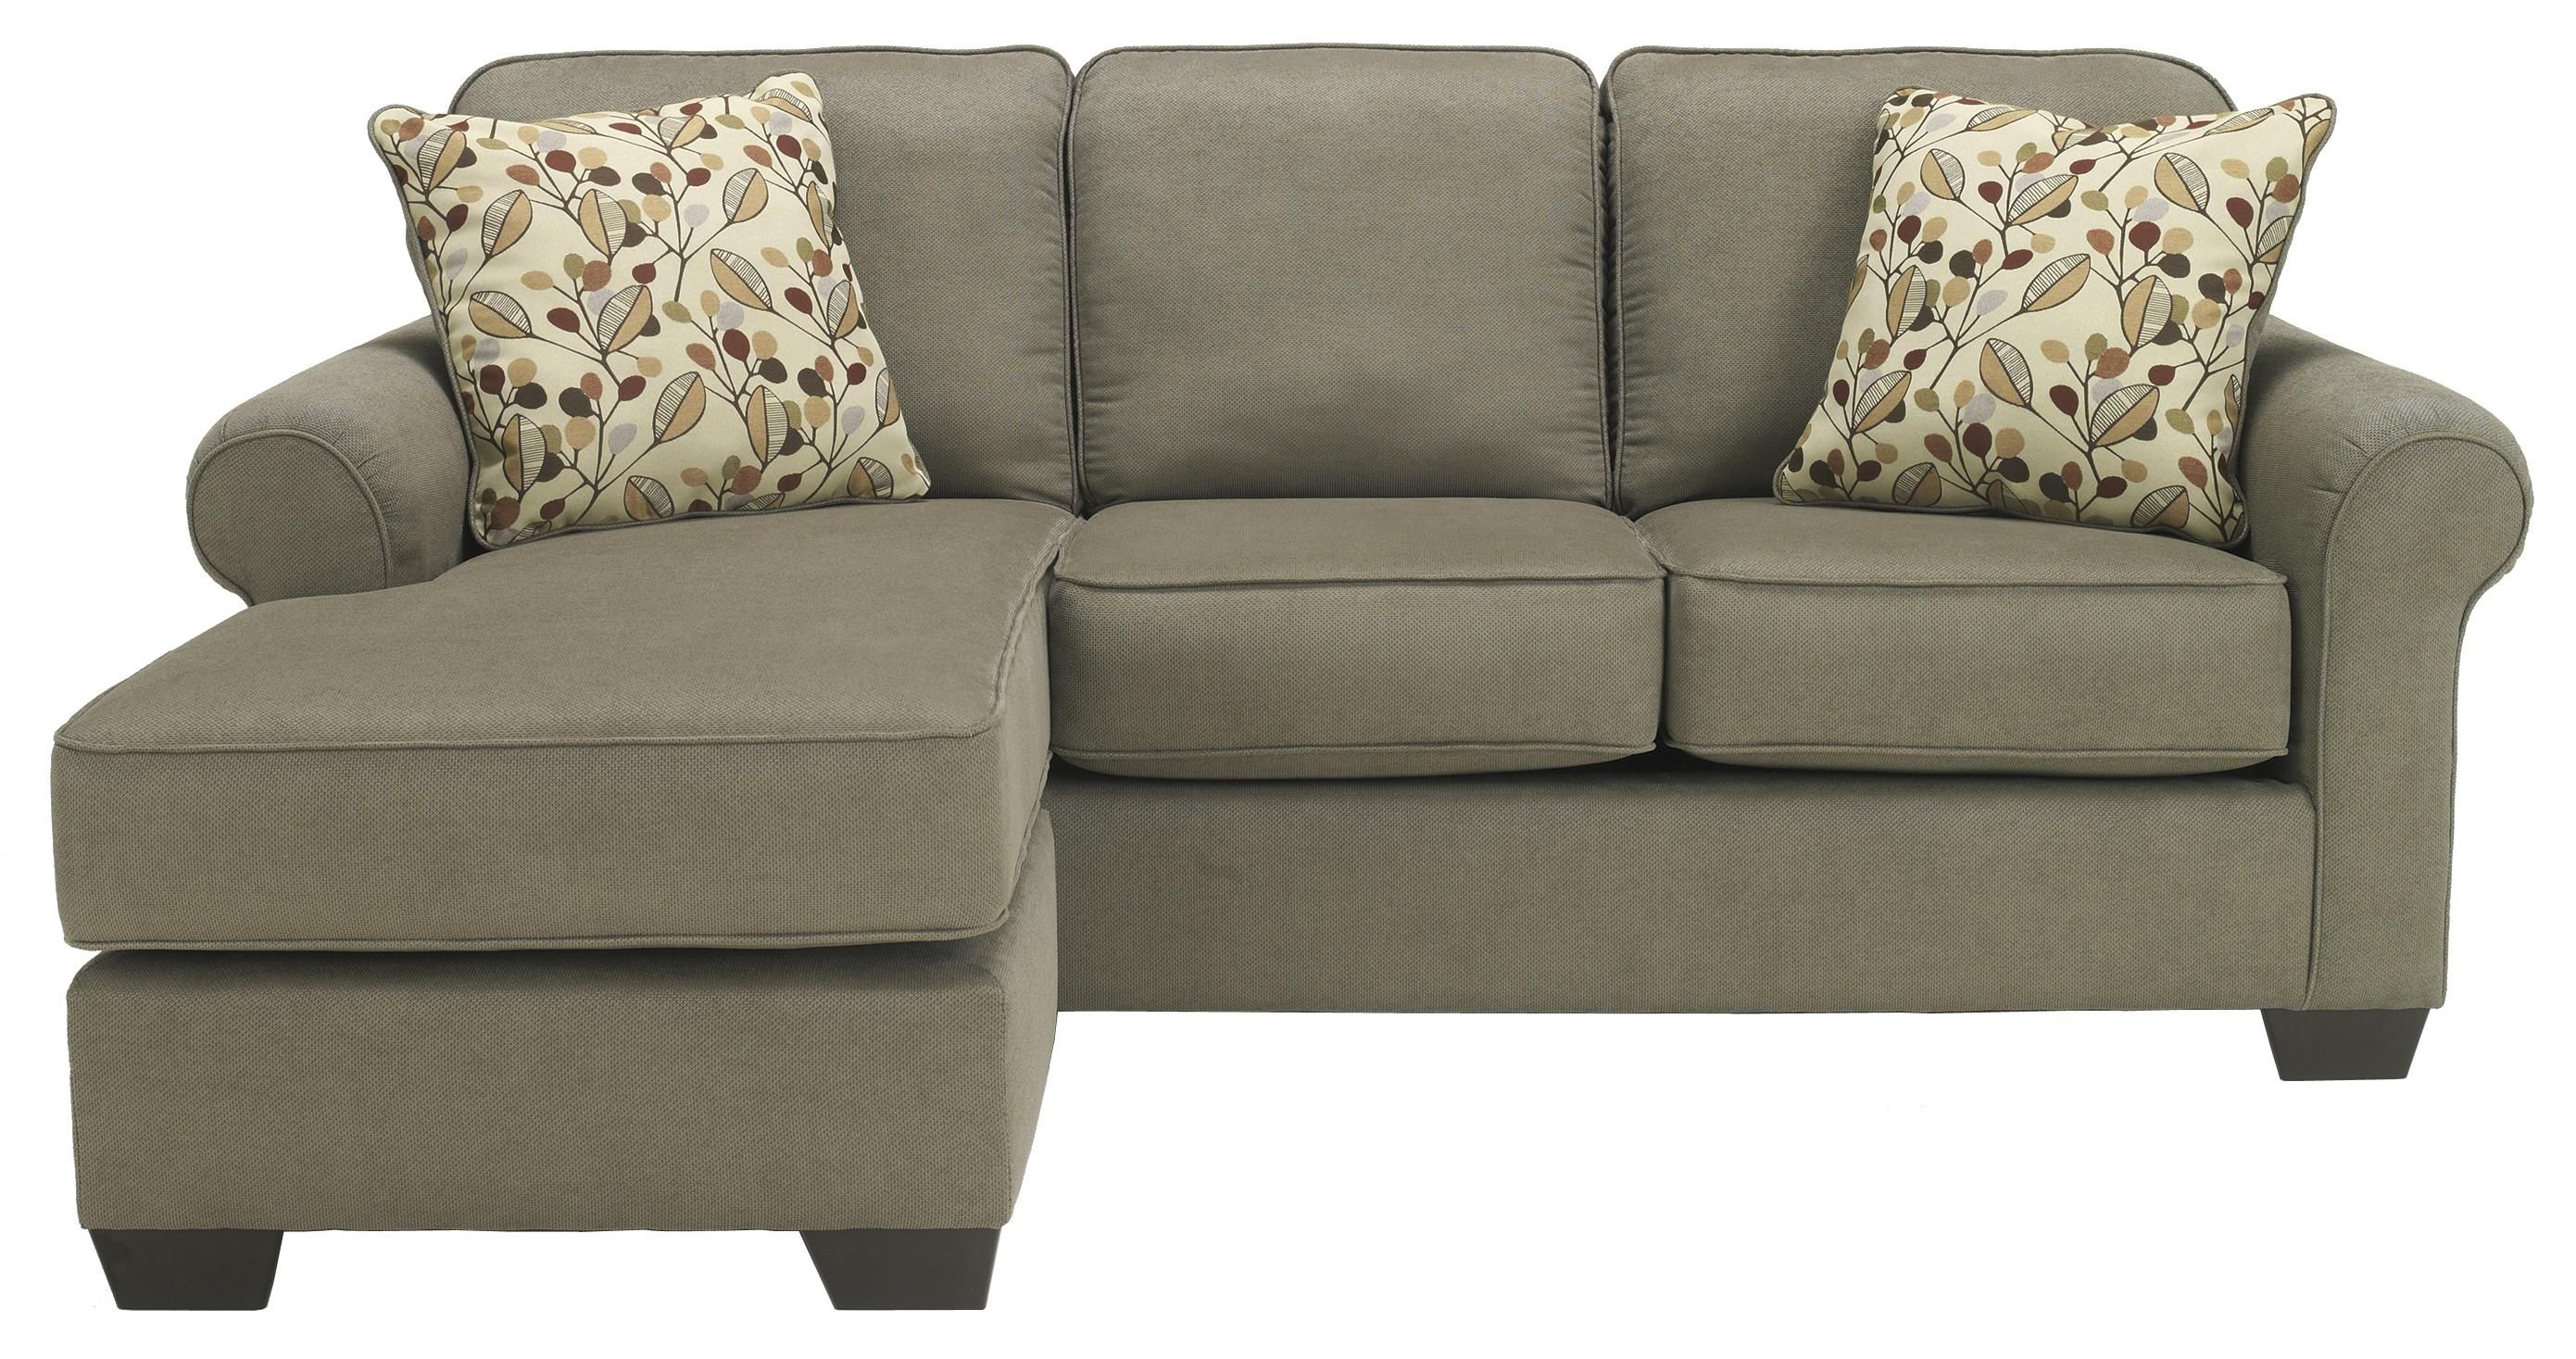 Best Danely Dusk Sofa Chaise By Benchcraft Sectional Sofa Couch Sectional Sofa With Chaise 640 x 480